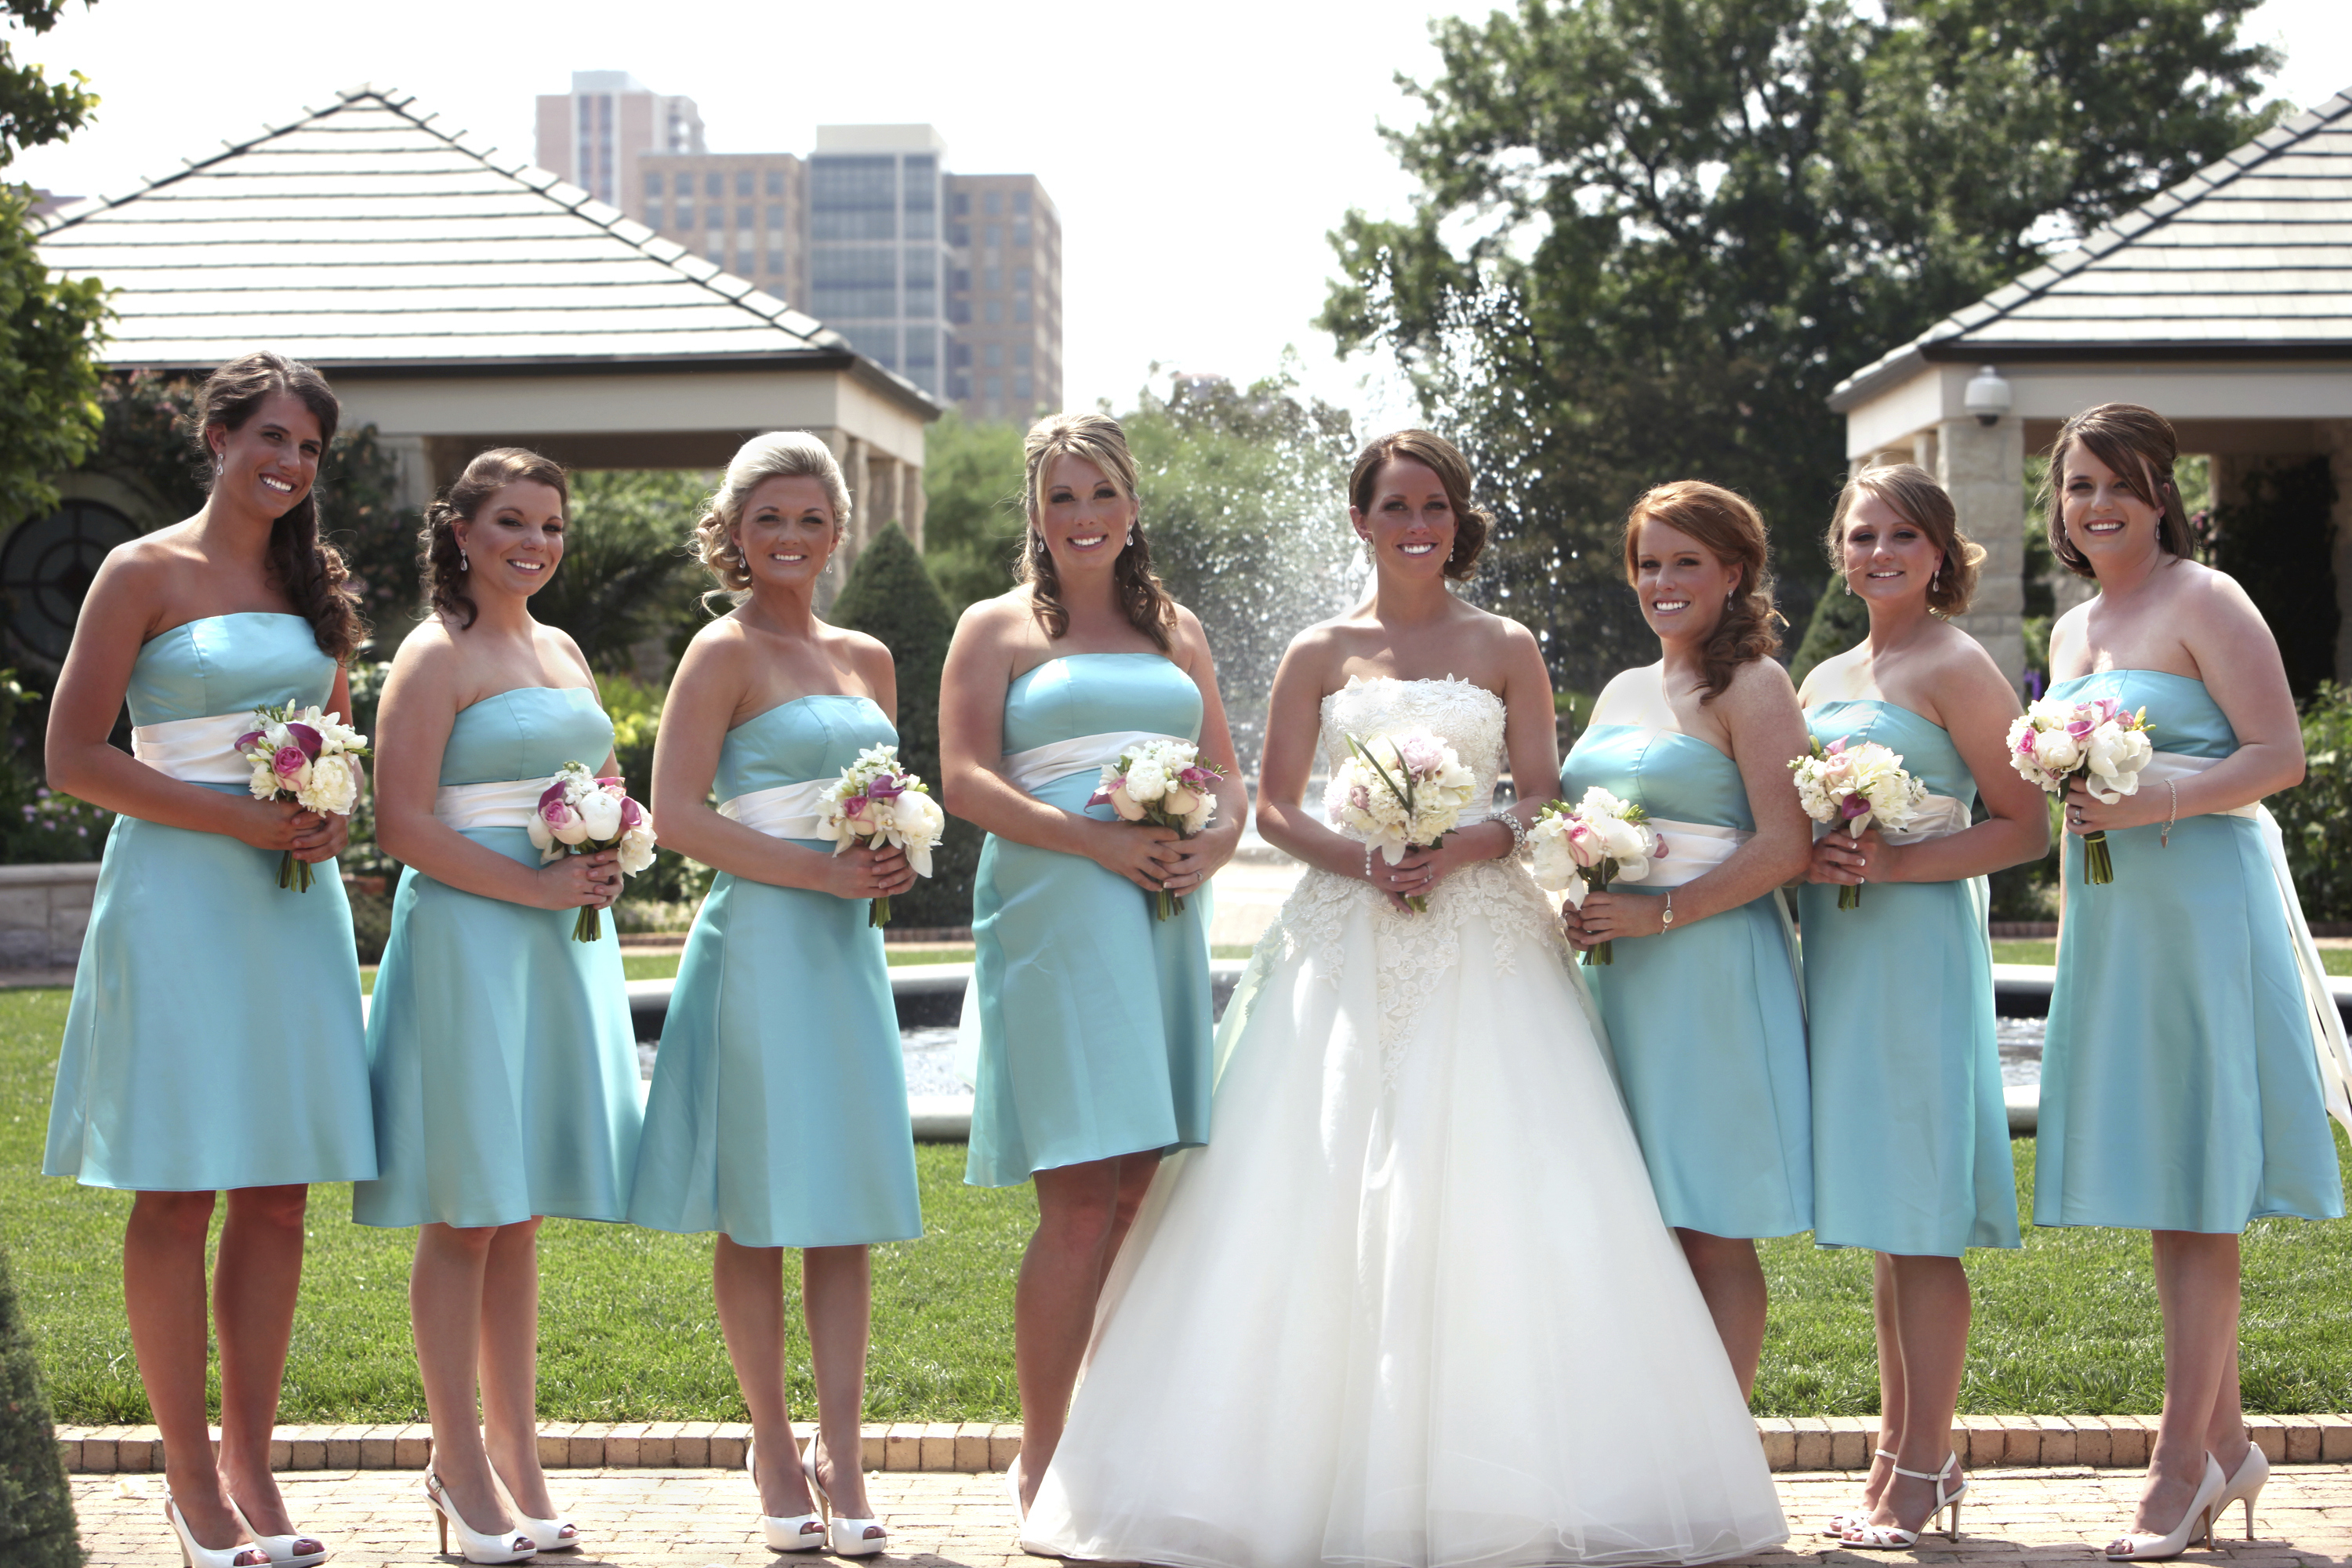 Bridesmaid dress tips - Articles - Easy Weddings